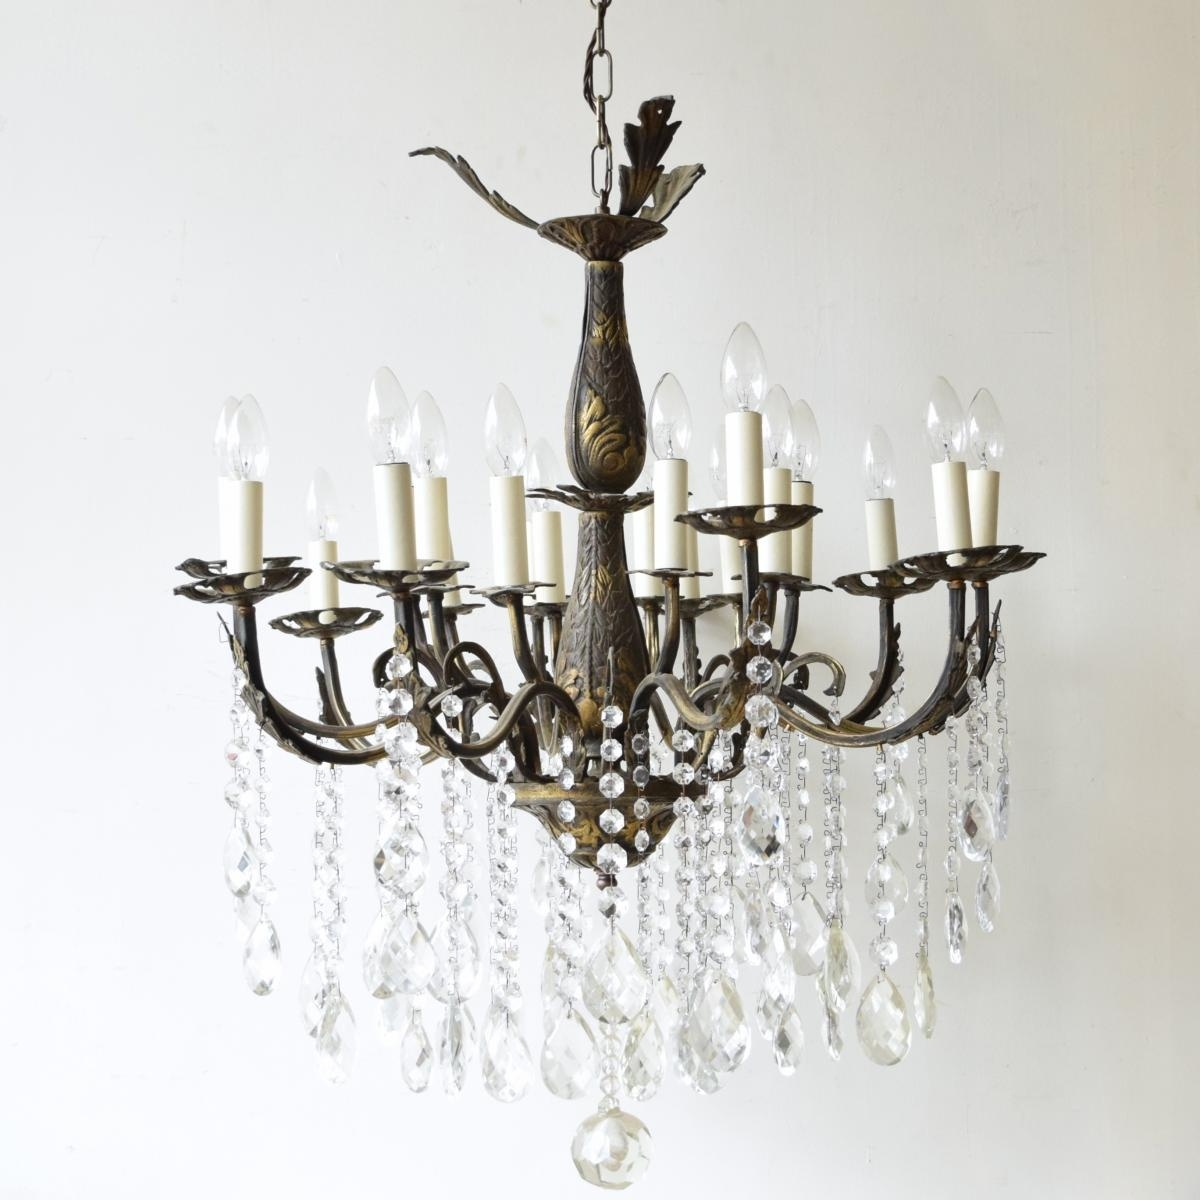 Large Vintage French 16 Light Brass Chandelier For Sale At Pamono For Most Up To Date Large Brass Chandelier (View 7 of 20)